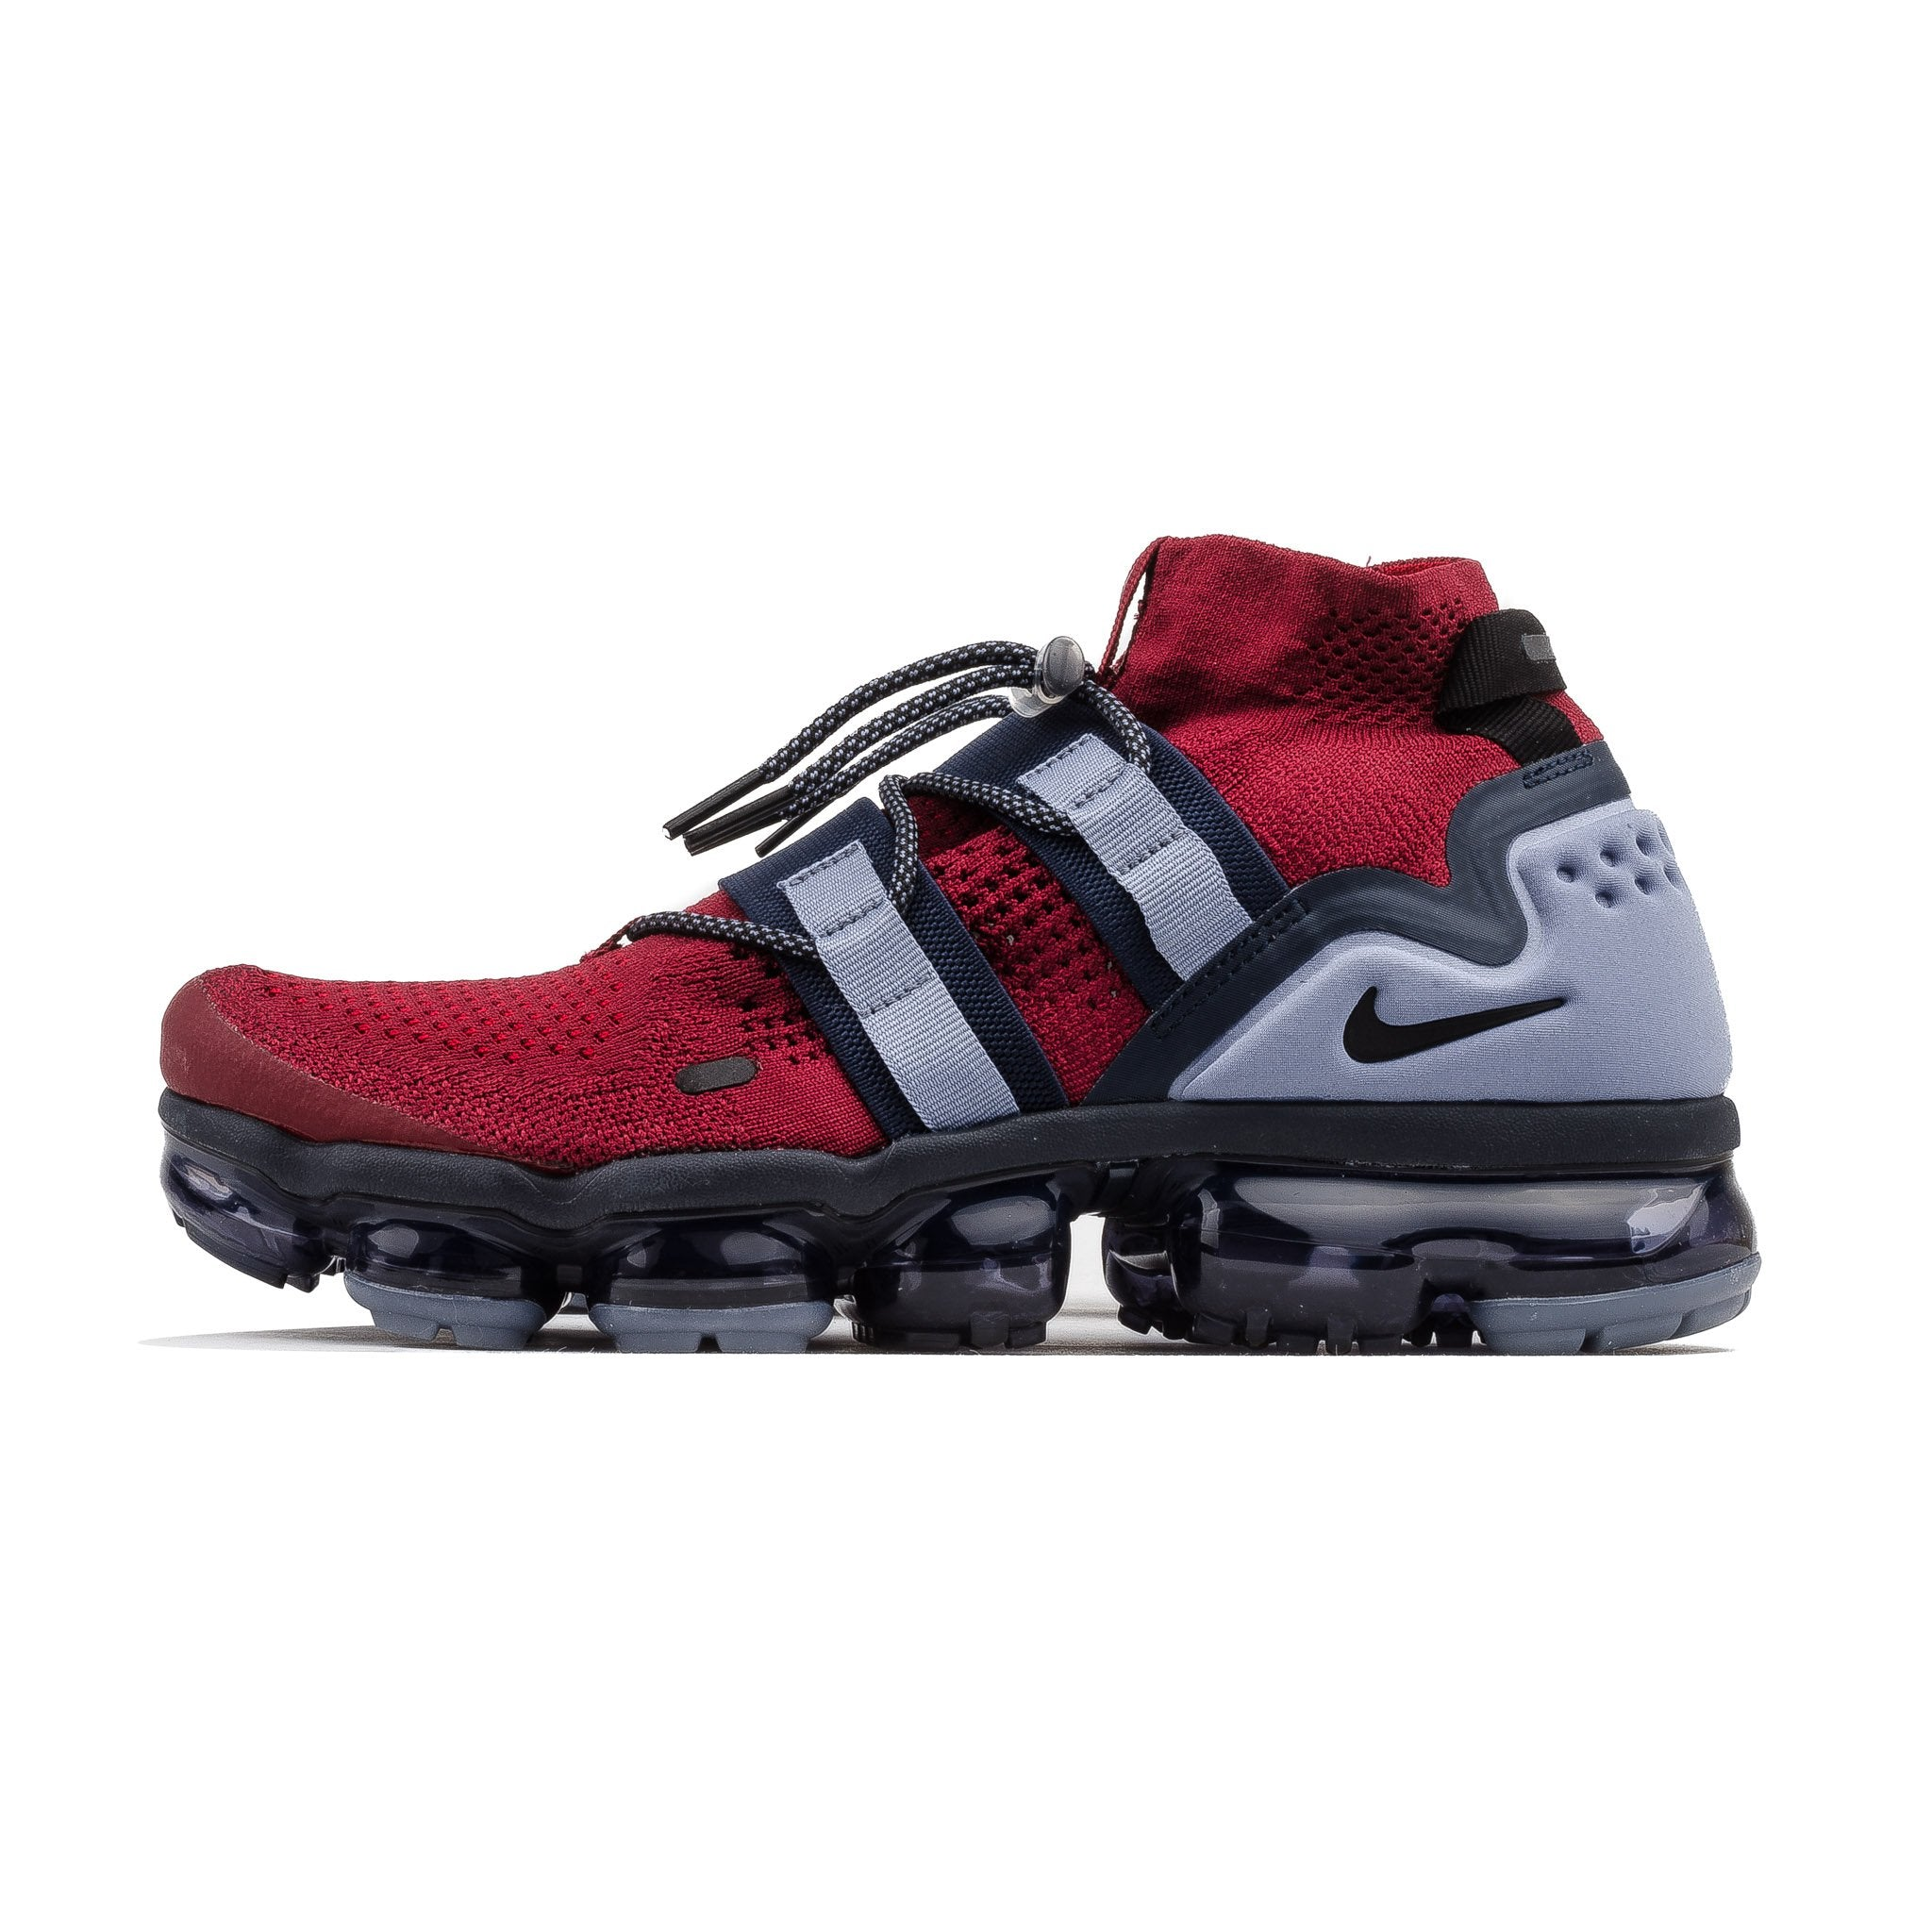 Air Vapormax FK Utility AH6834-600 Team Red